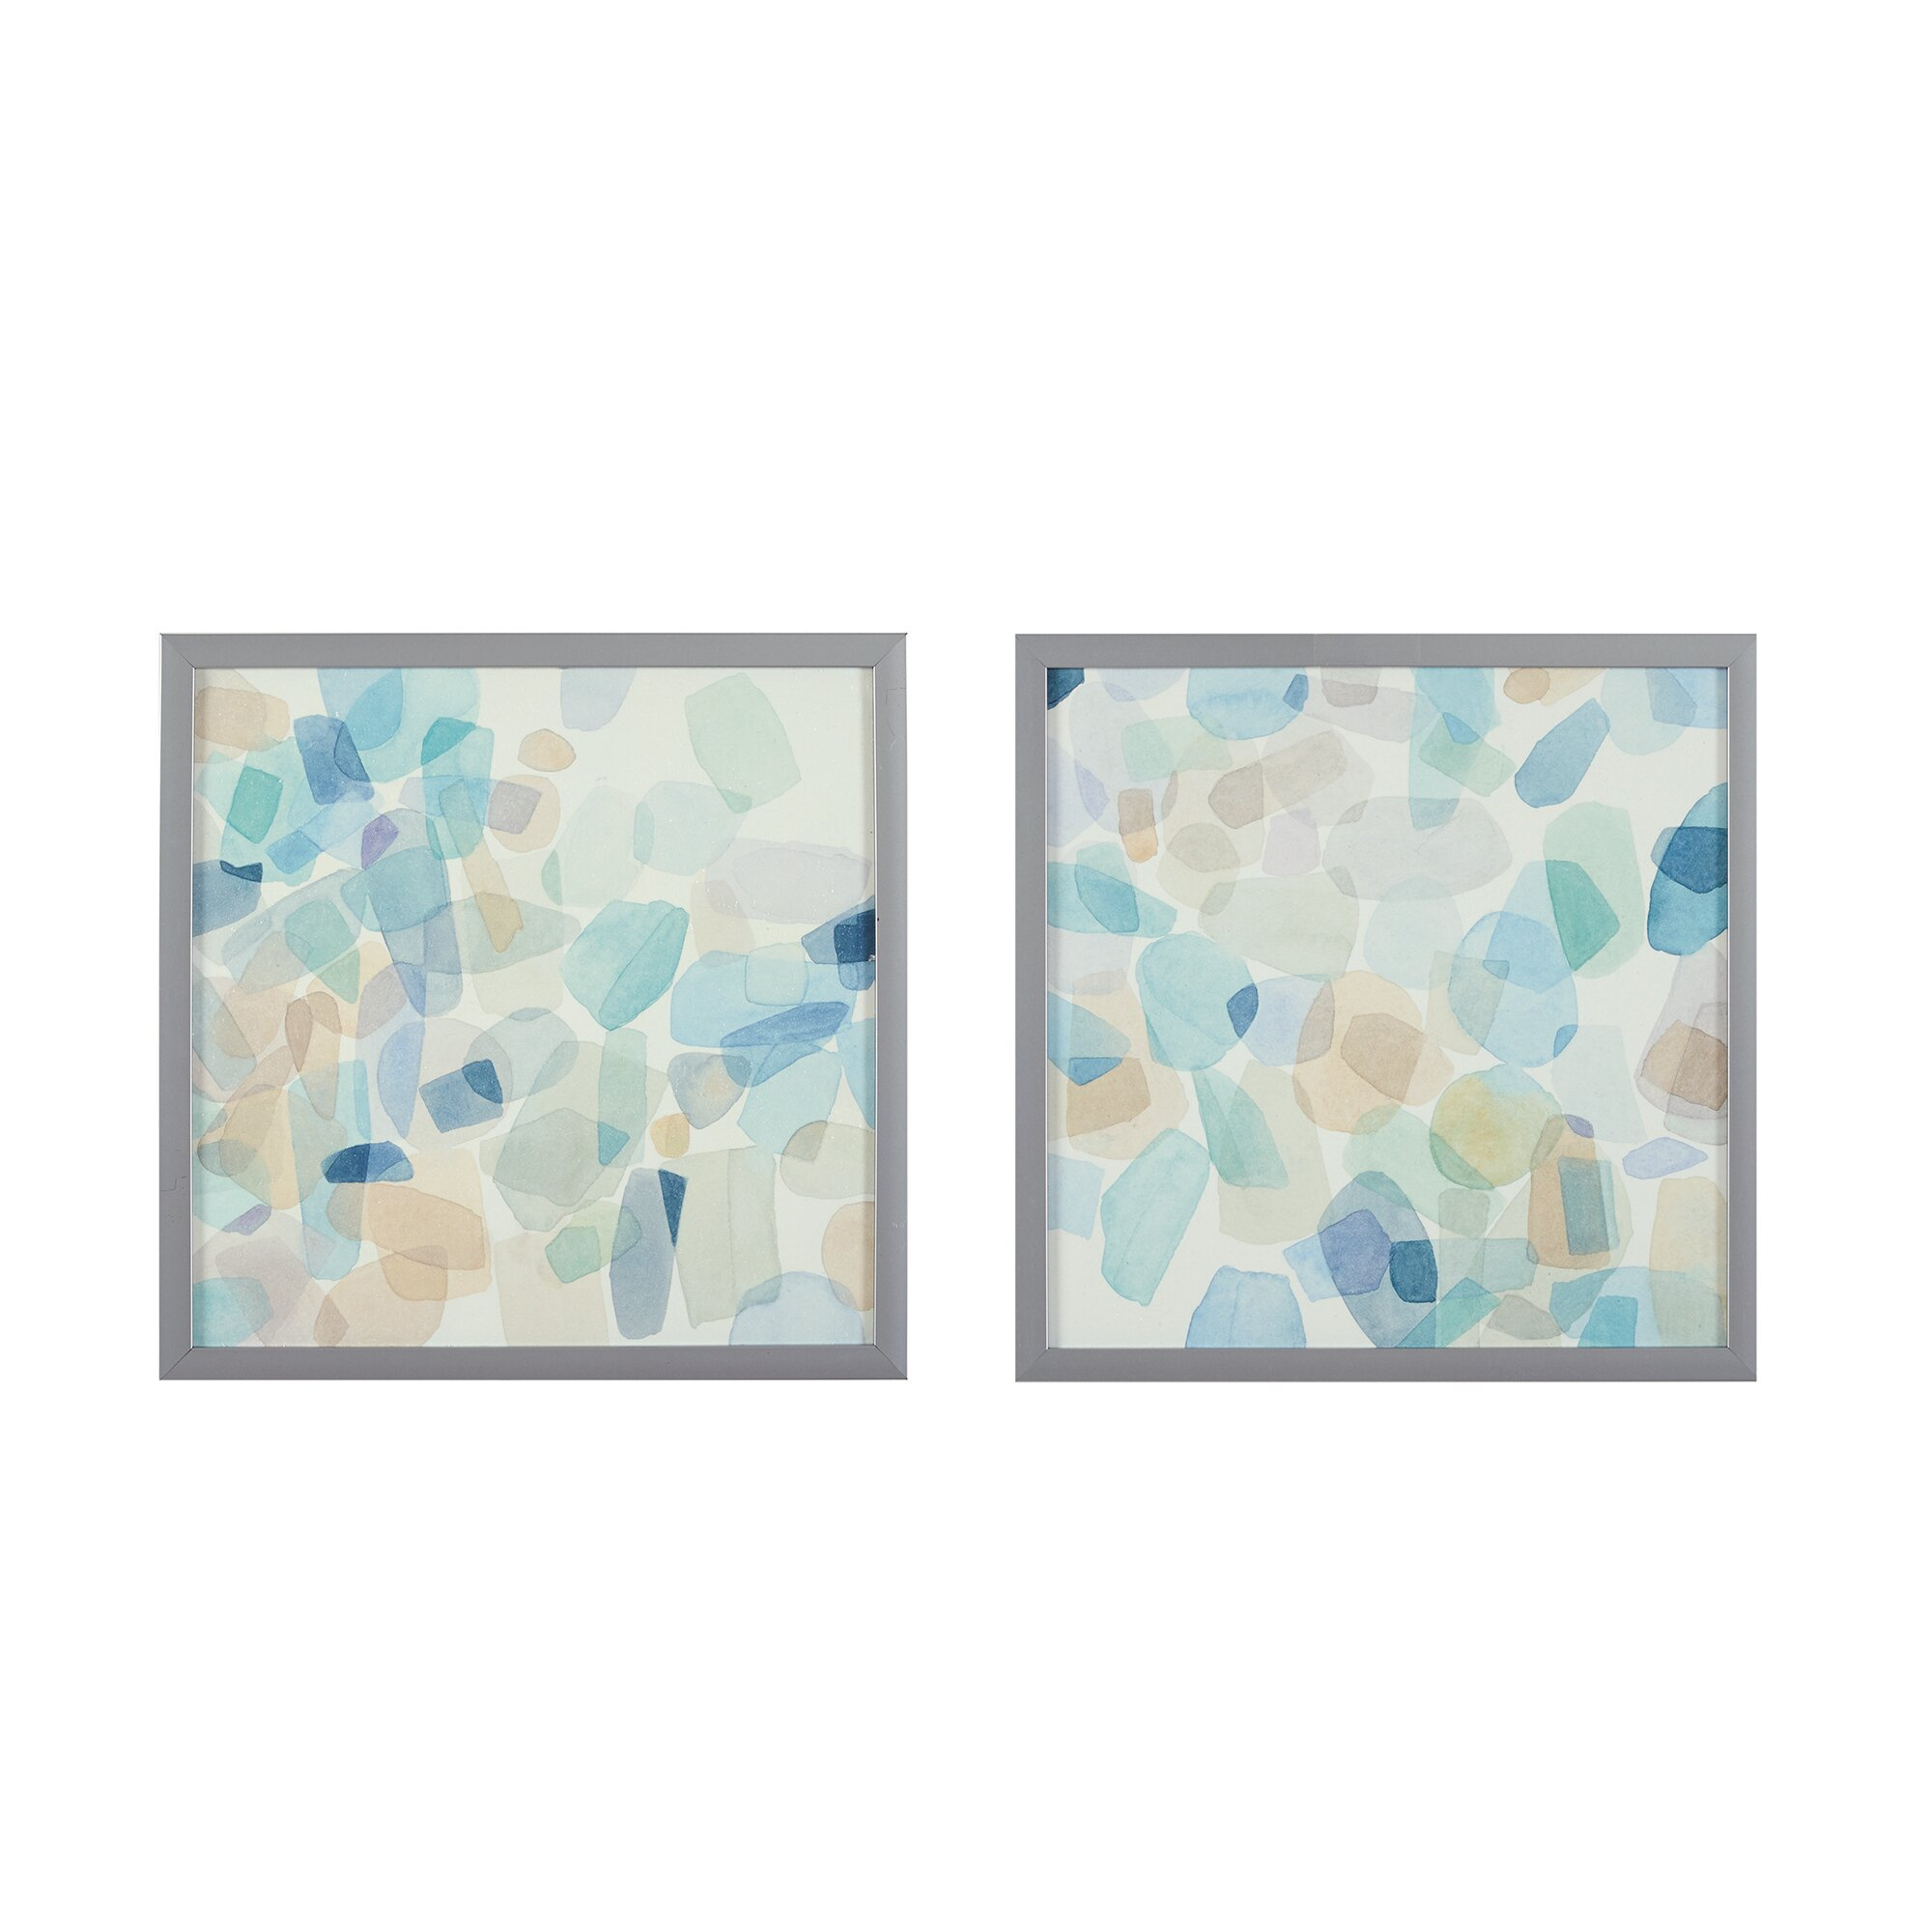 Kitchen Wall Decor Bed Bath And Beyond: Intelligent Design Gemstone Tiles Deco Box 2 Piece Framed